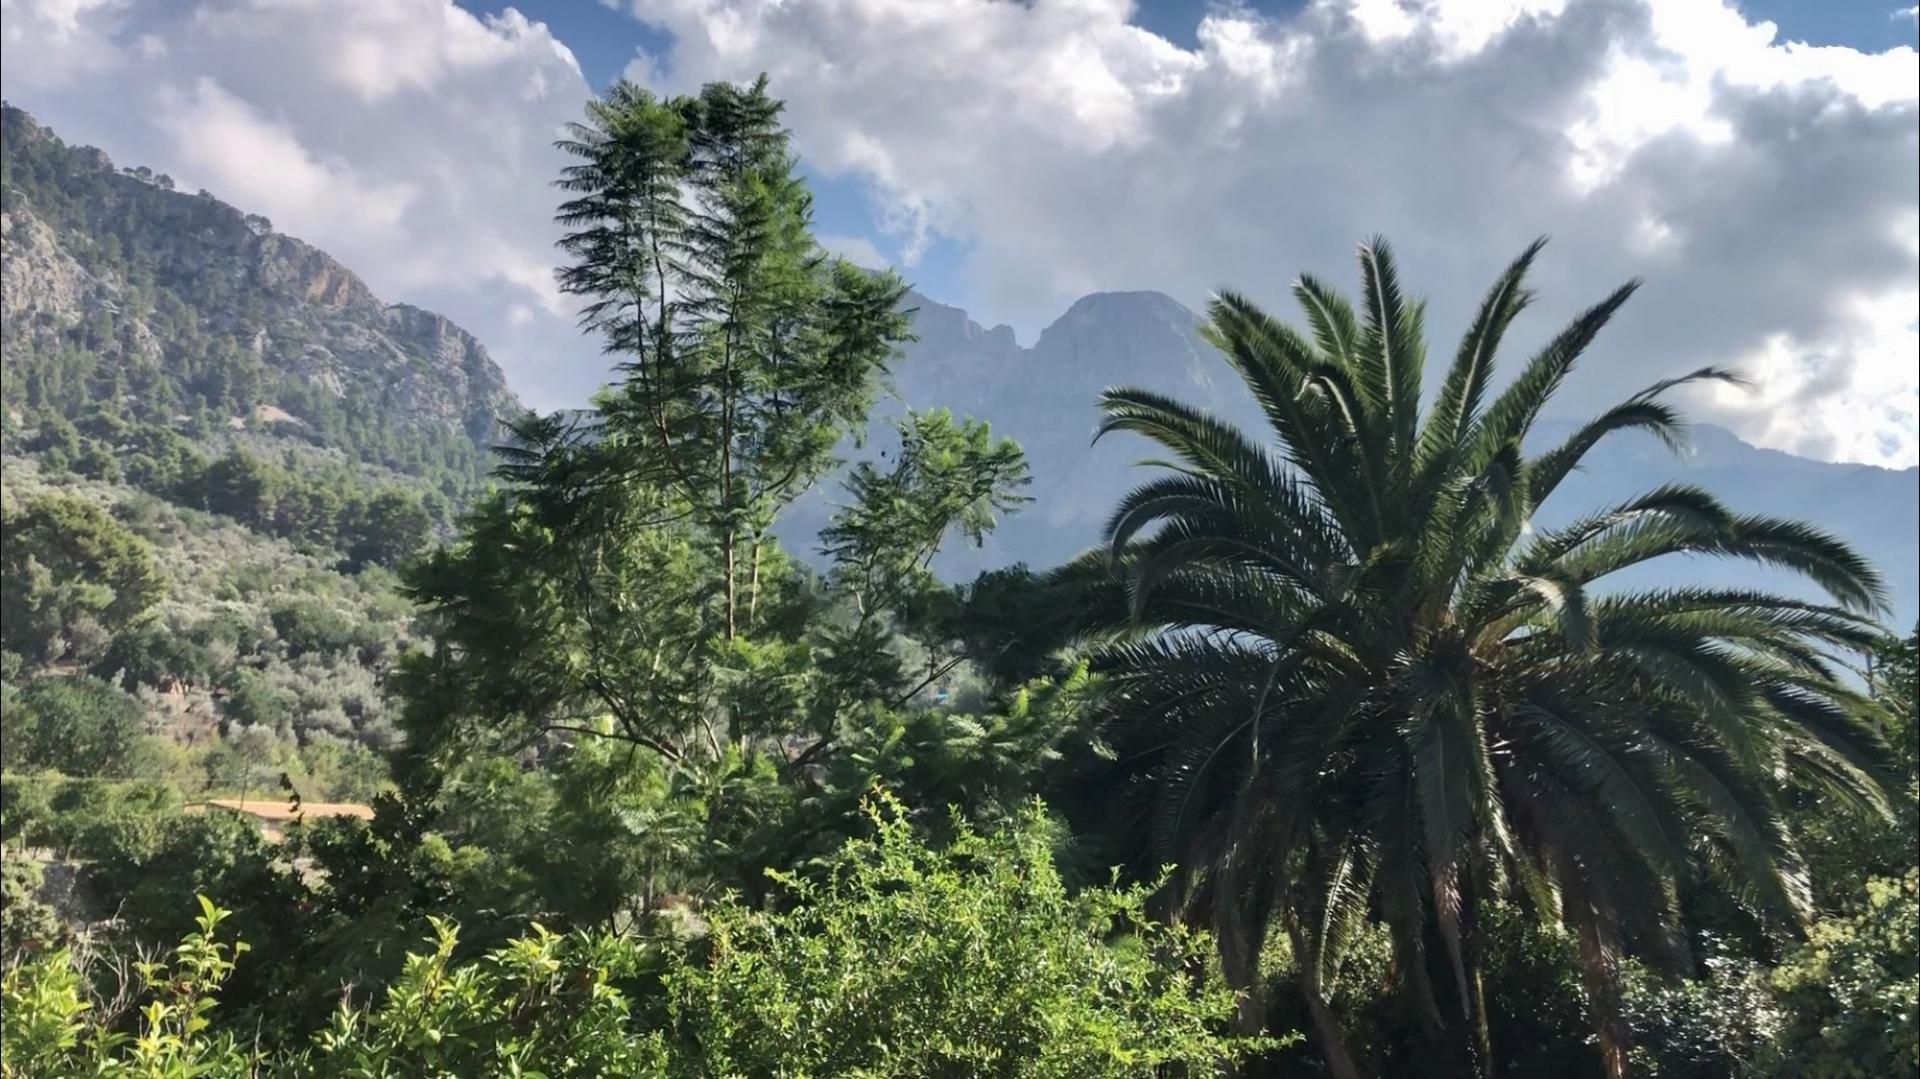 The 'Golden Bowl' of the Soller Valley occupies many words and pictures.